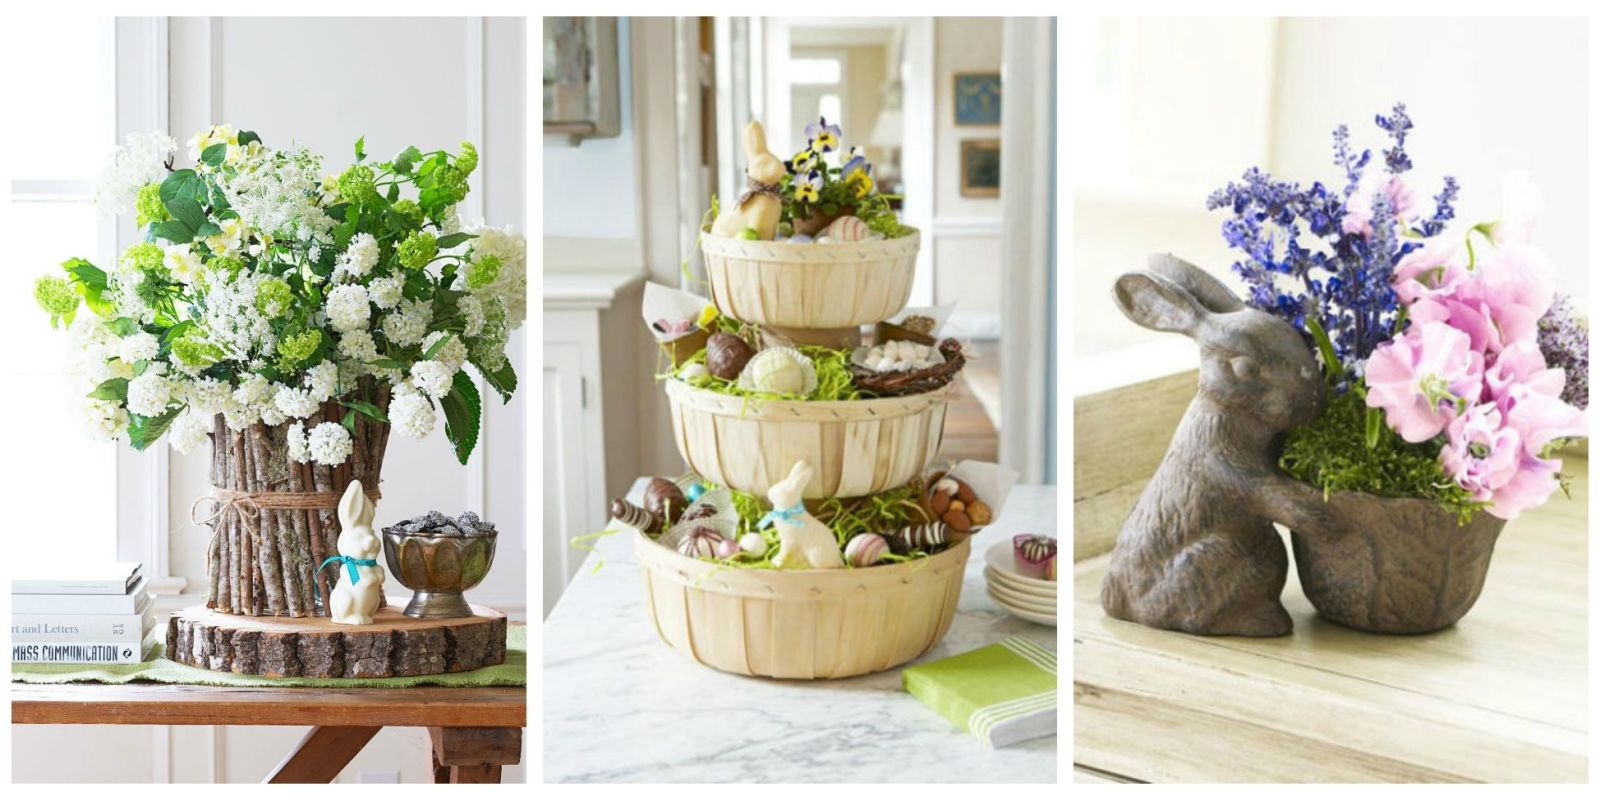 70 diy easter decorations ideas for homemade easter for How to make easter decorations for the home